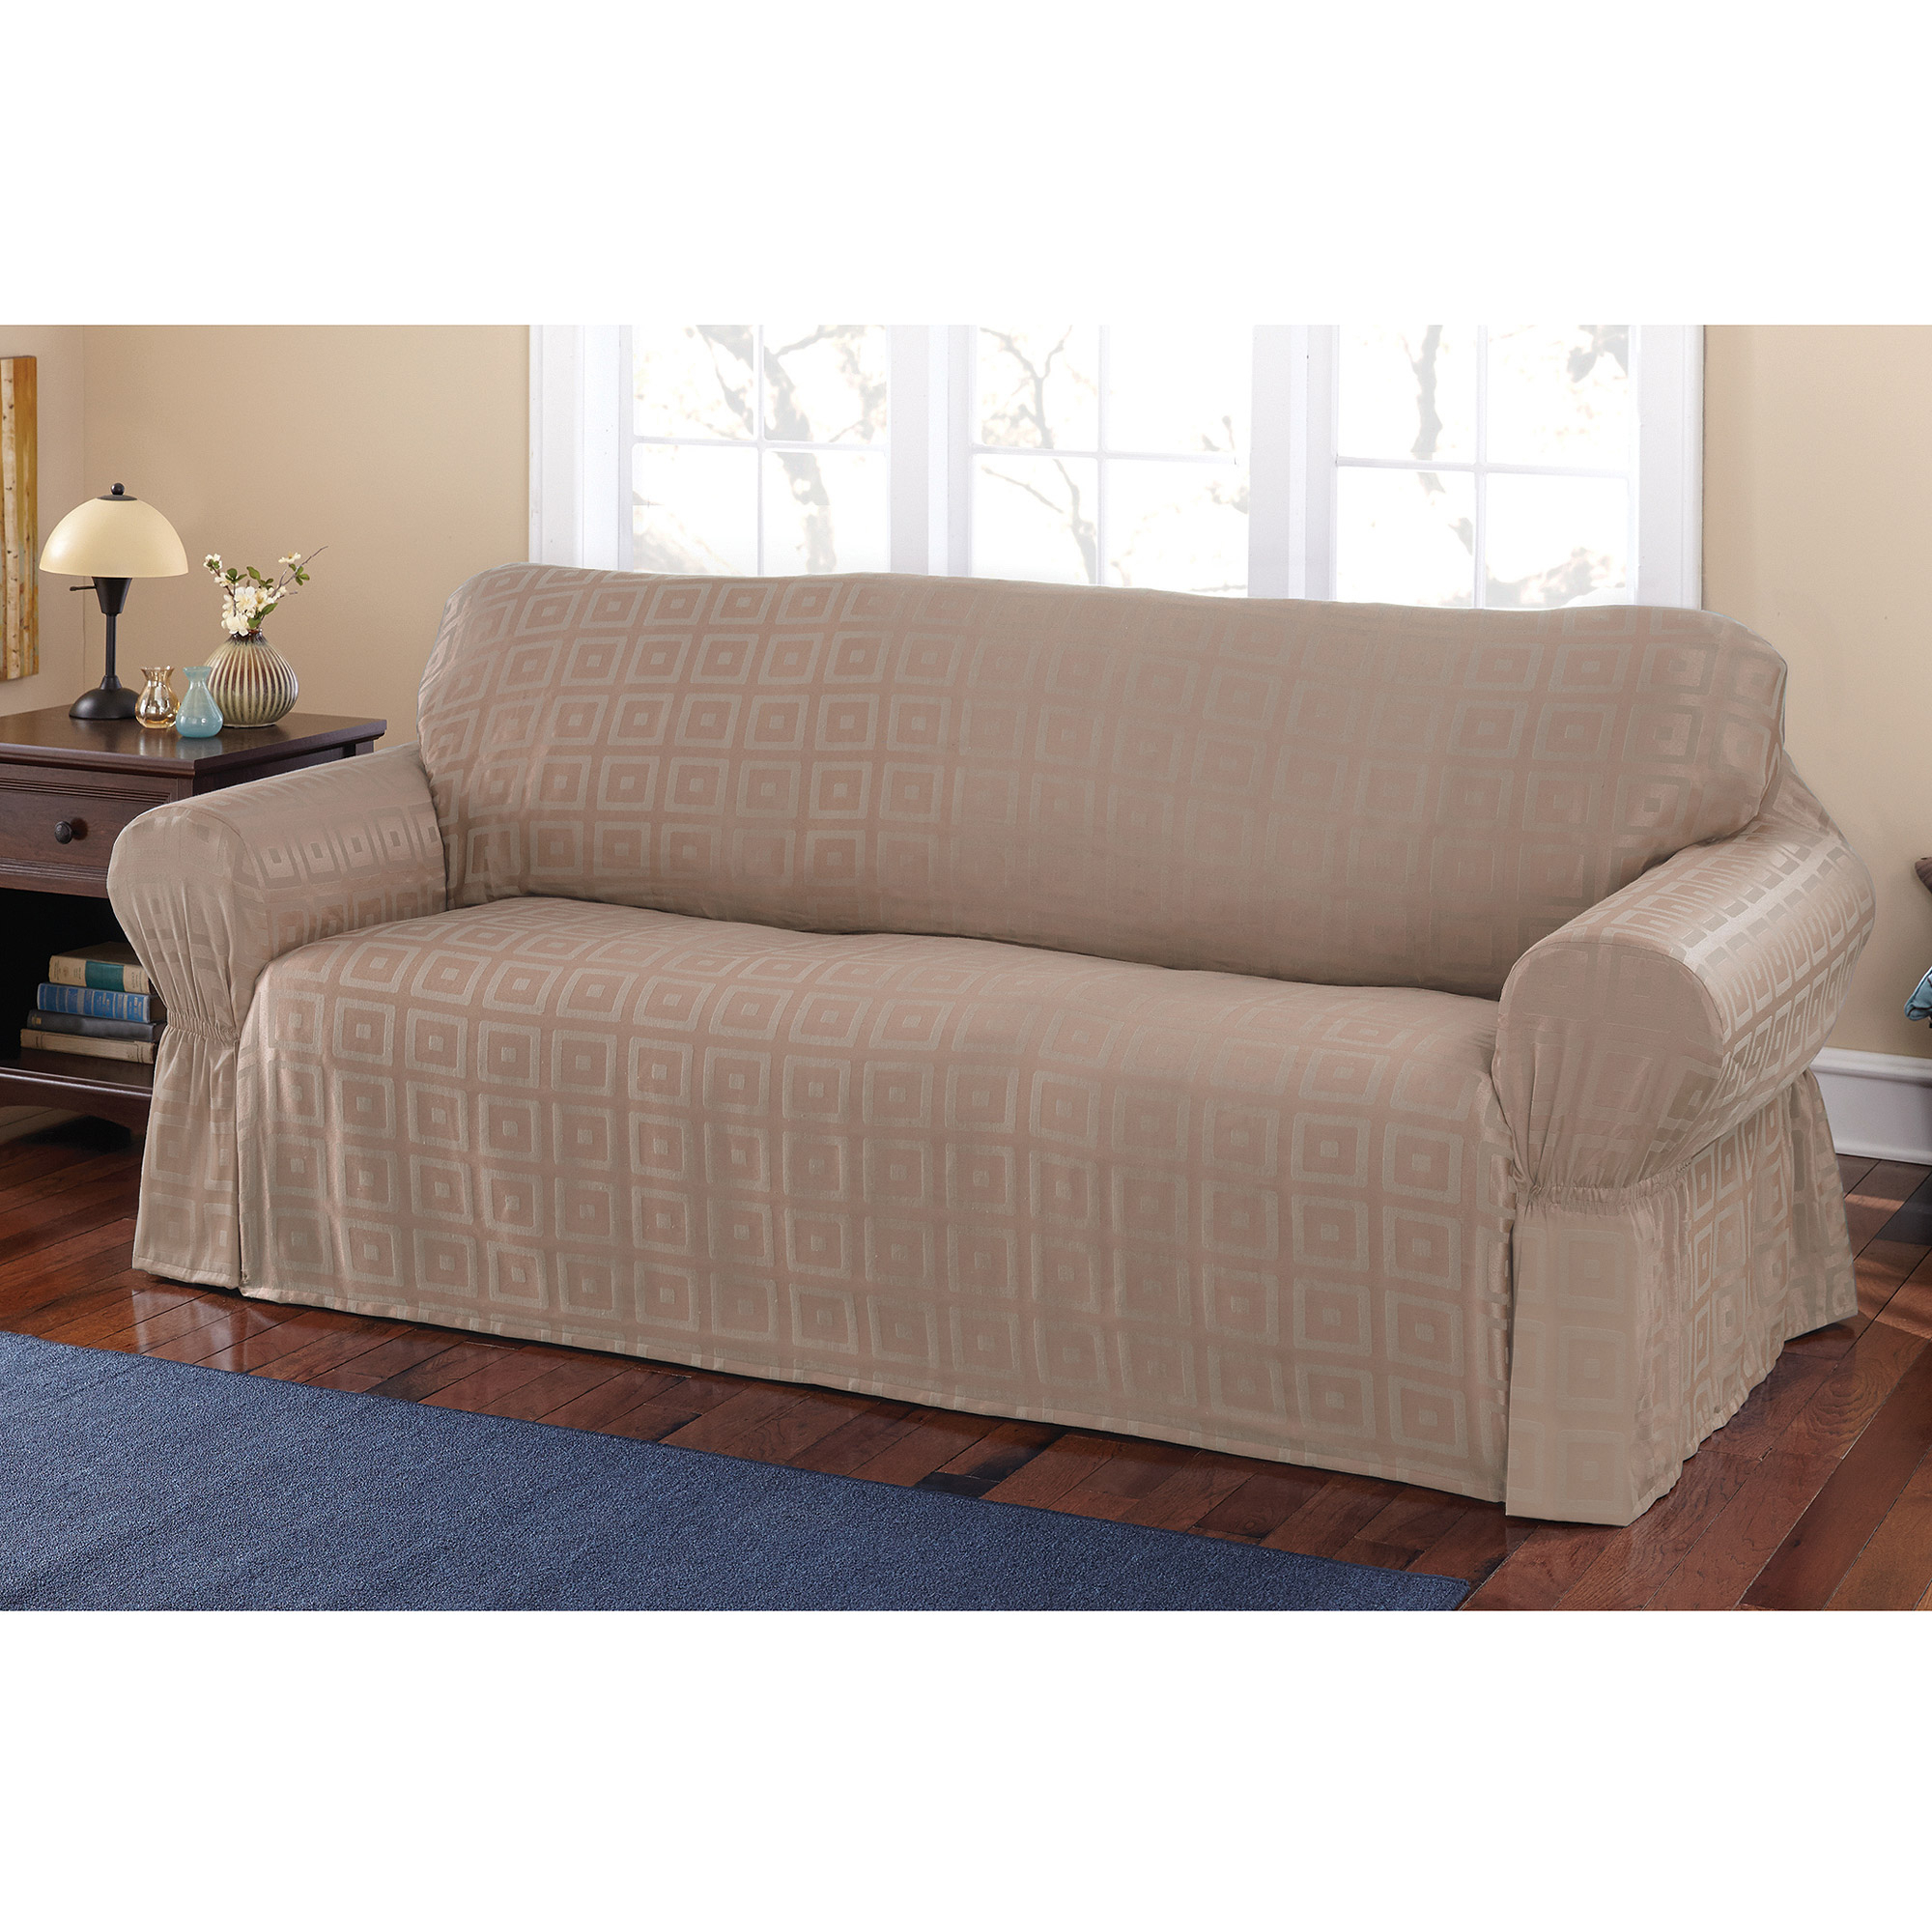 Most Up To Date Slipcovers For Chairs And Sofas Regarding Mainstays Sherwood Slipcover Sofa – Walmart (View 10 of 20)